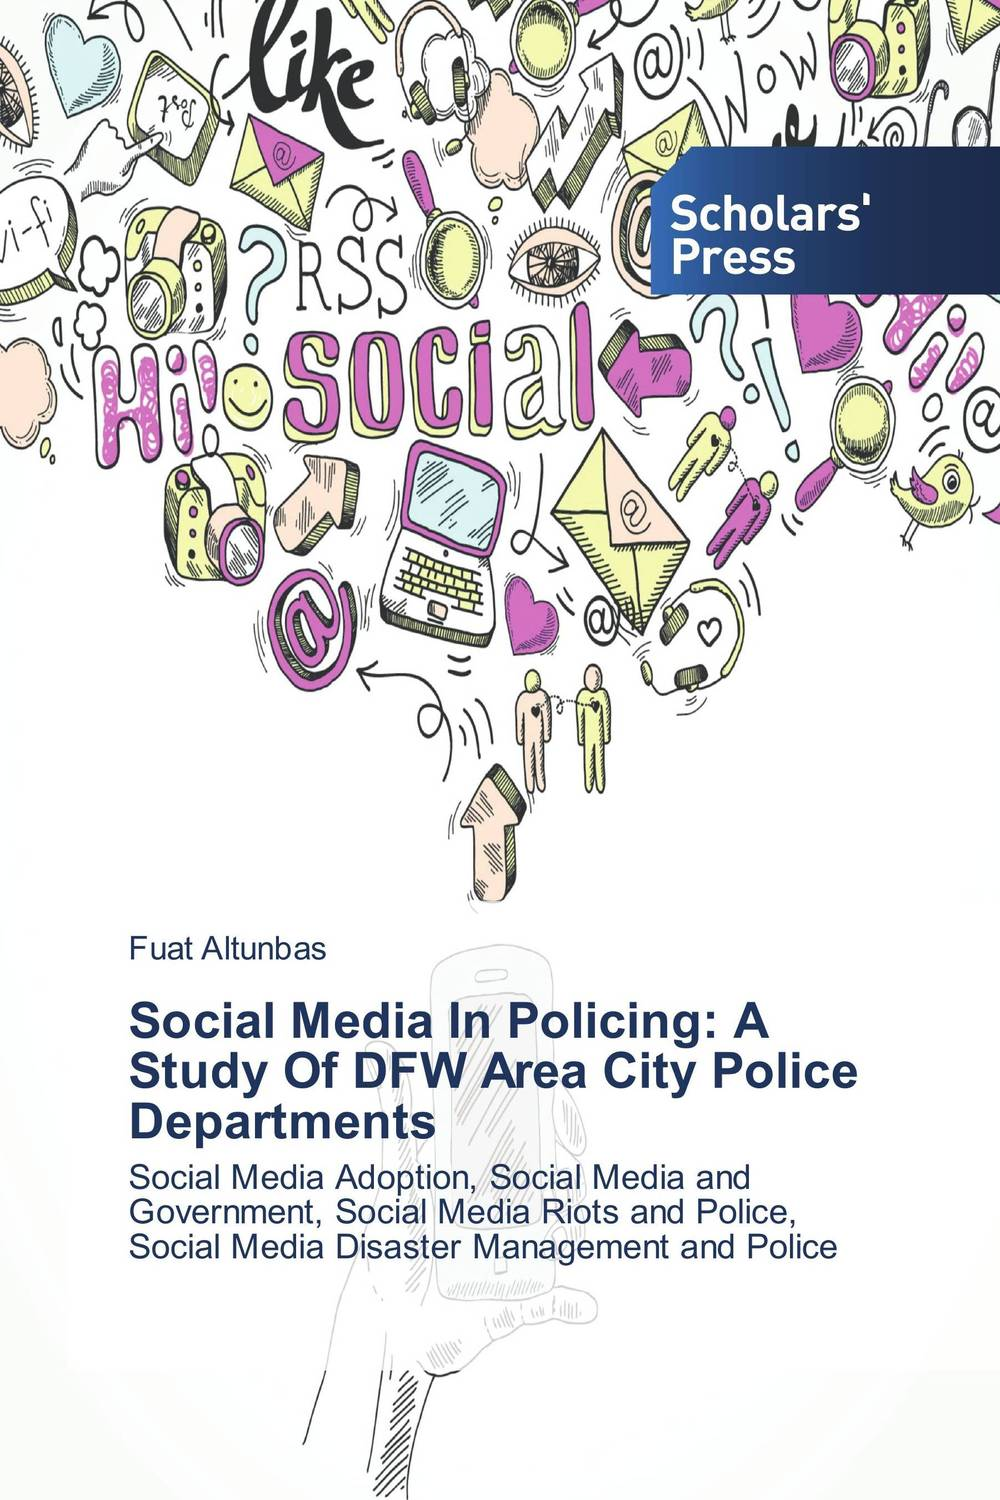 Social Media In Policing: A Study Of DFW Area City Police Departments a study of the religio political thought of abdurrahman wahid